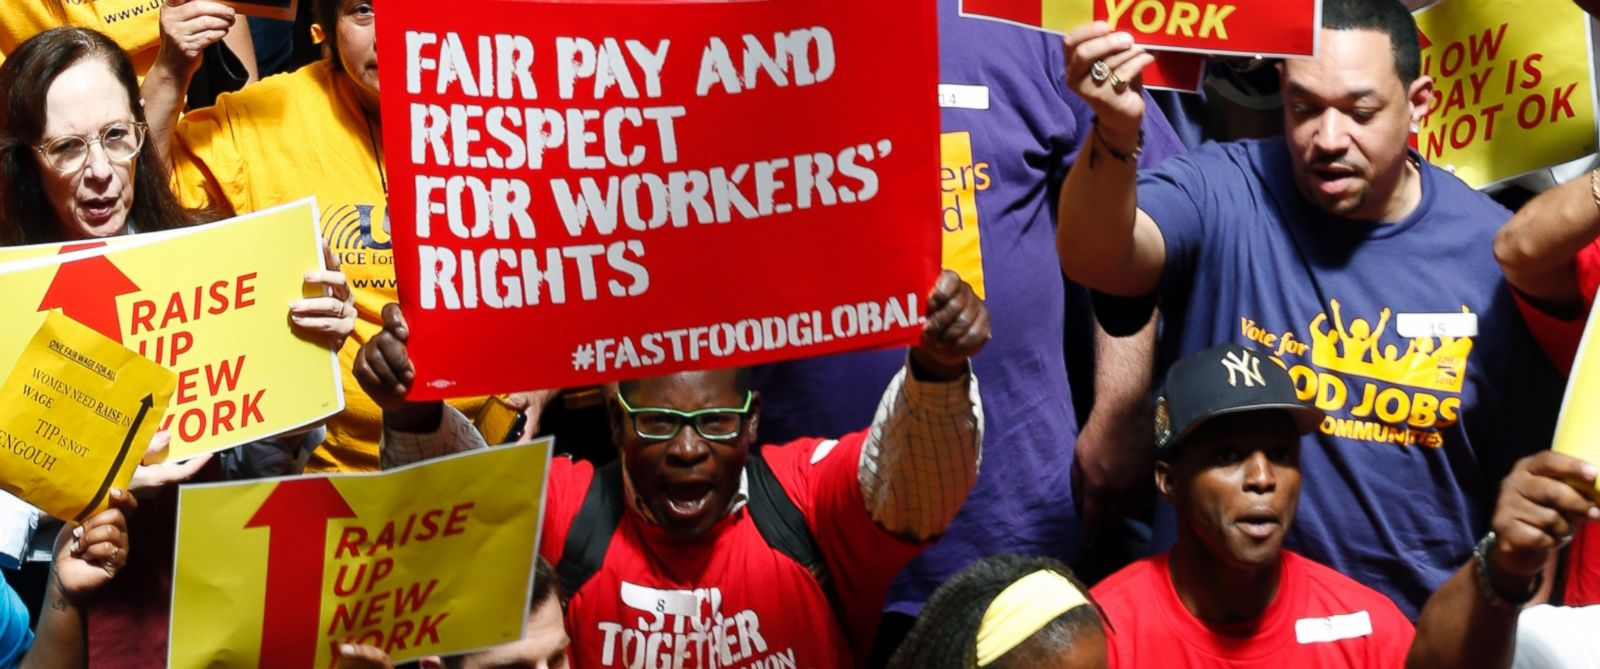 PHOTO: In a June 17, 2014 file photo, protesters rally for an increase in the minimum wage on the Great Western Staircase at the Capitol, in Albany, N.Y.